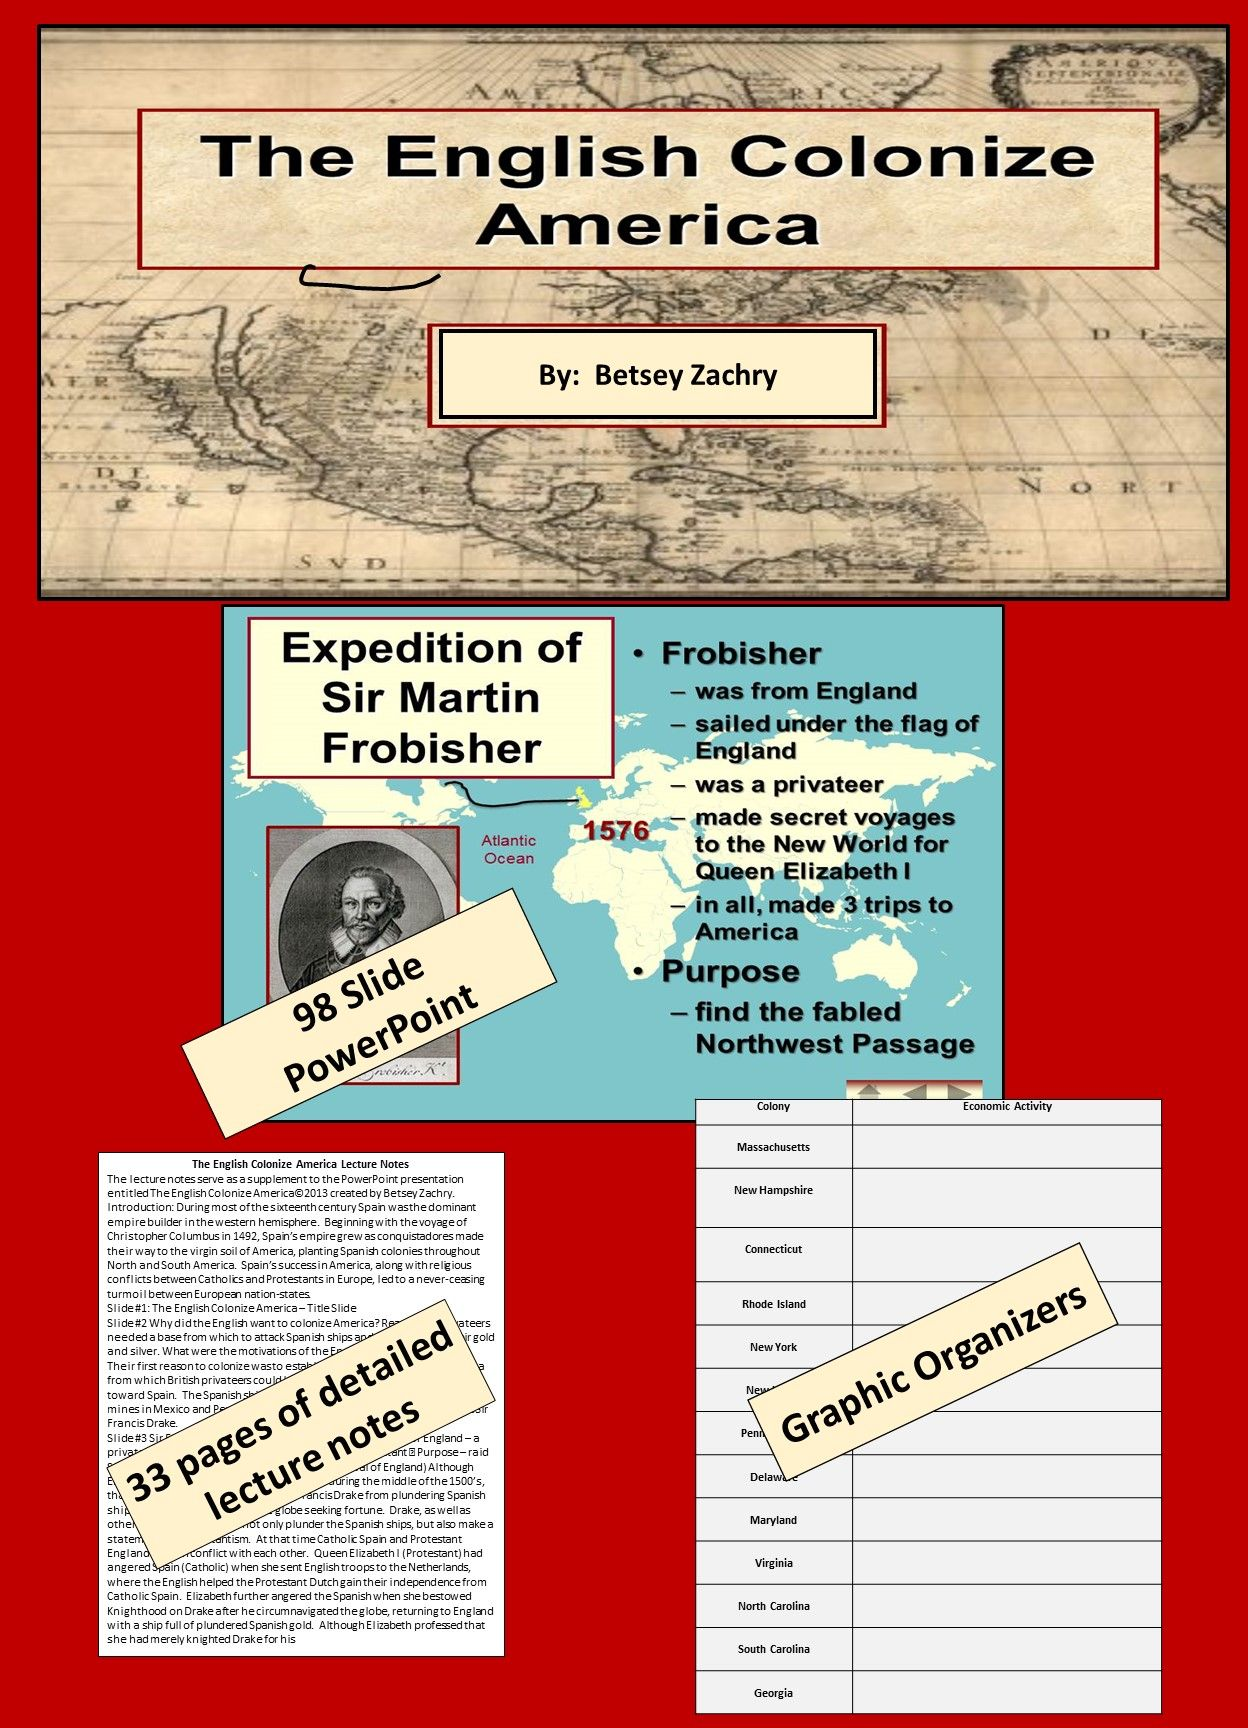 The English Colonize America Powerpoint Lecture Notes